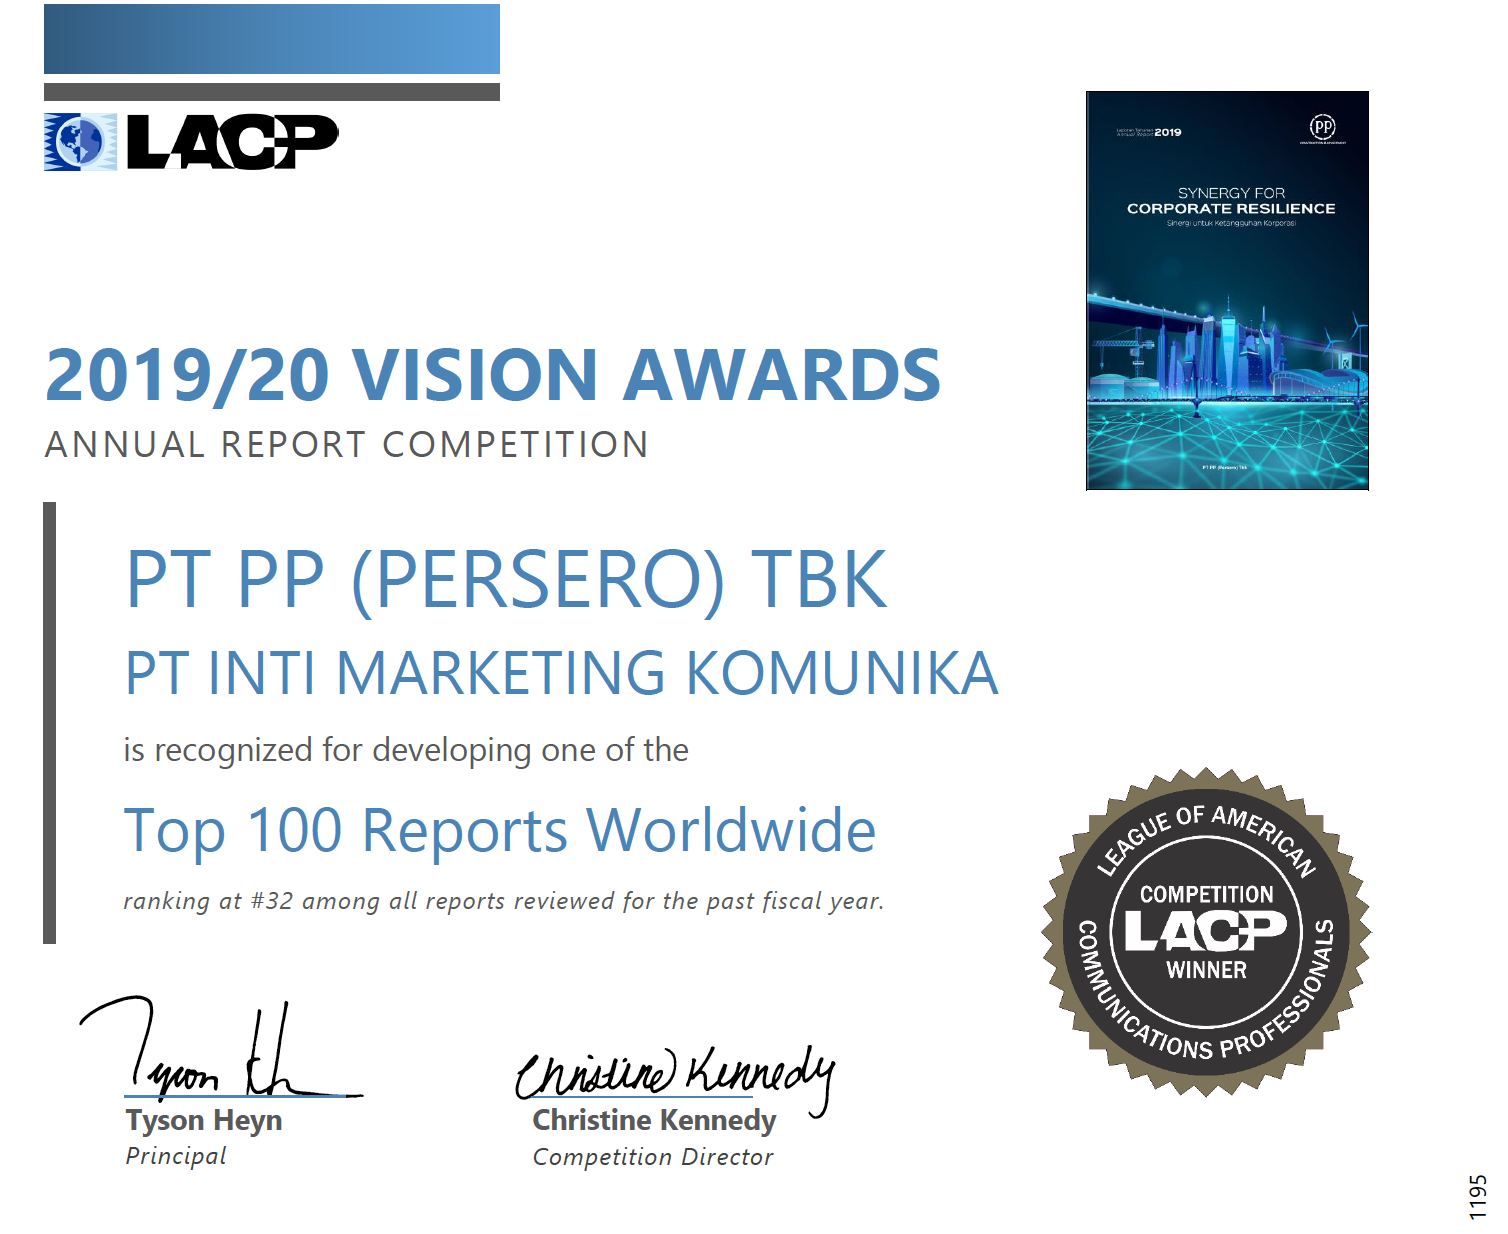 LACP COMPETITION WINNER (TOP 100 REPORTS WORLDWIDE)